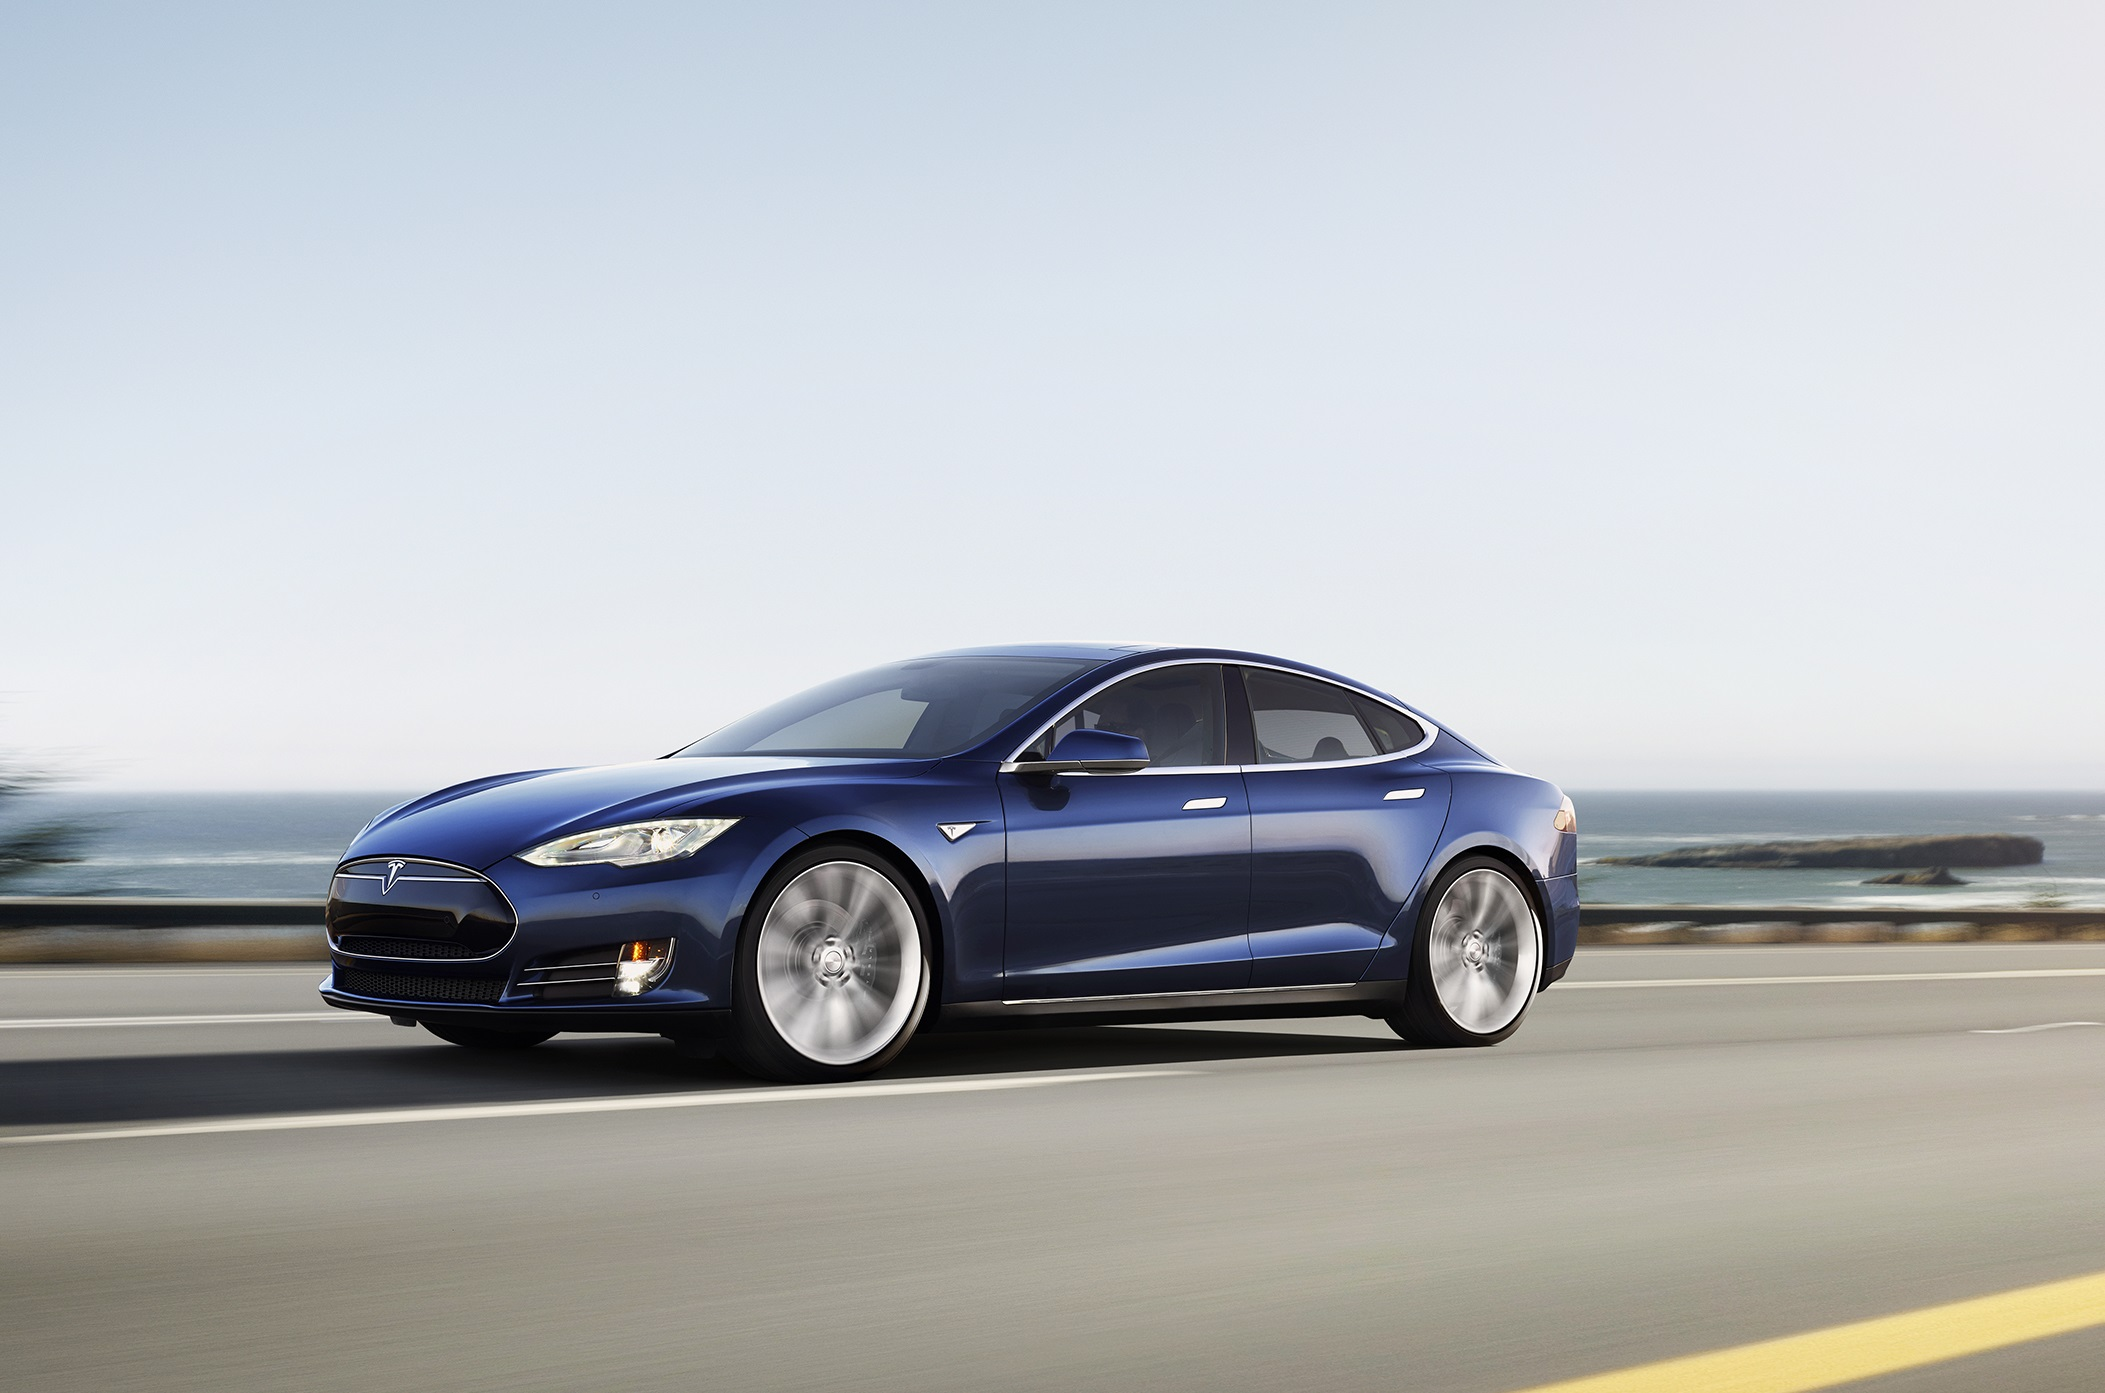 cr tests tesla model s p85d skeptical of p90d ludicrous mode claims. Black Bedroom Furniture Sets. Home Design Ideas